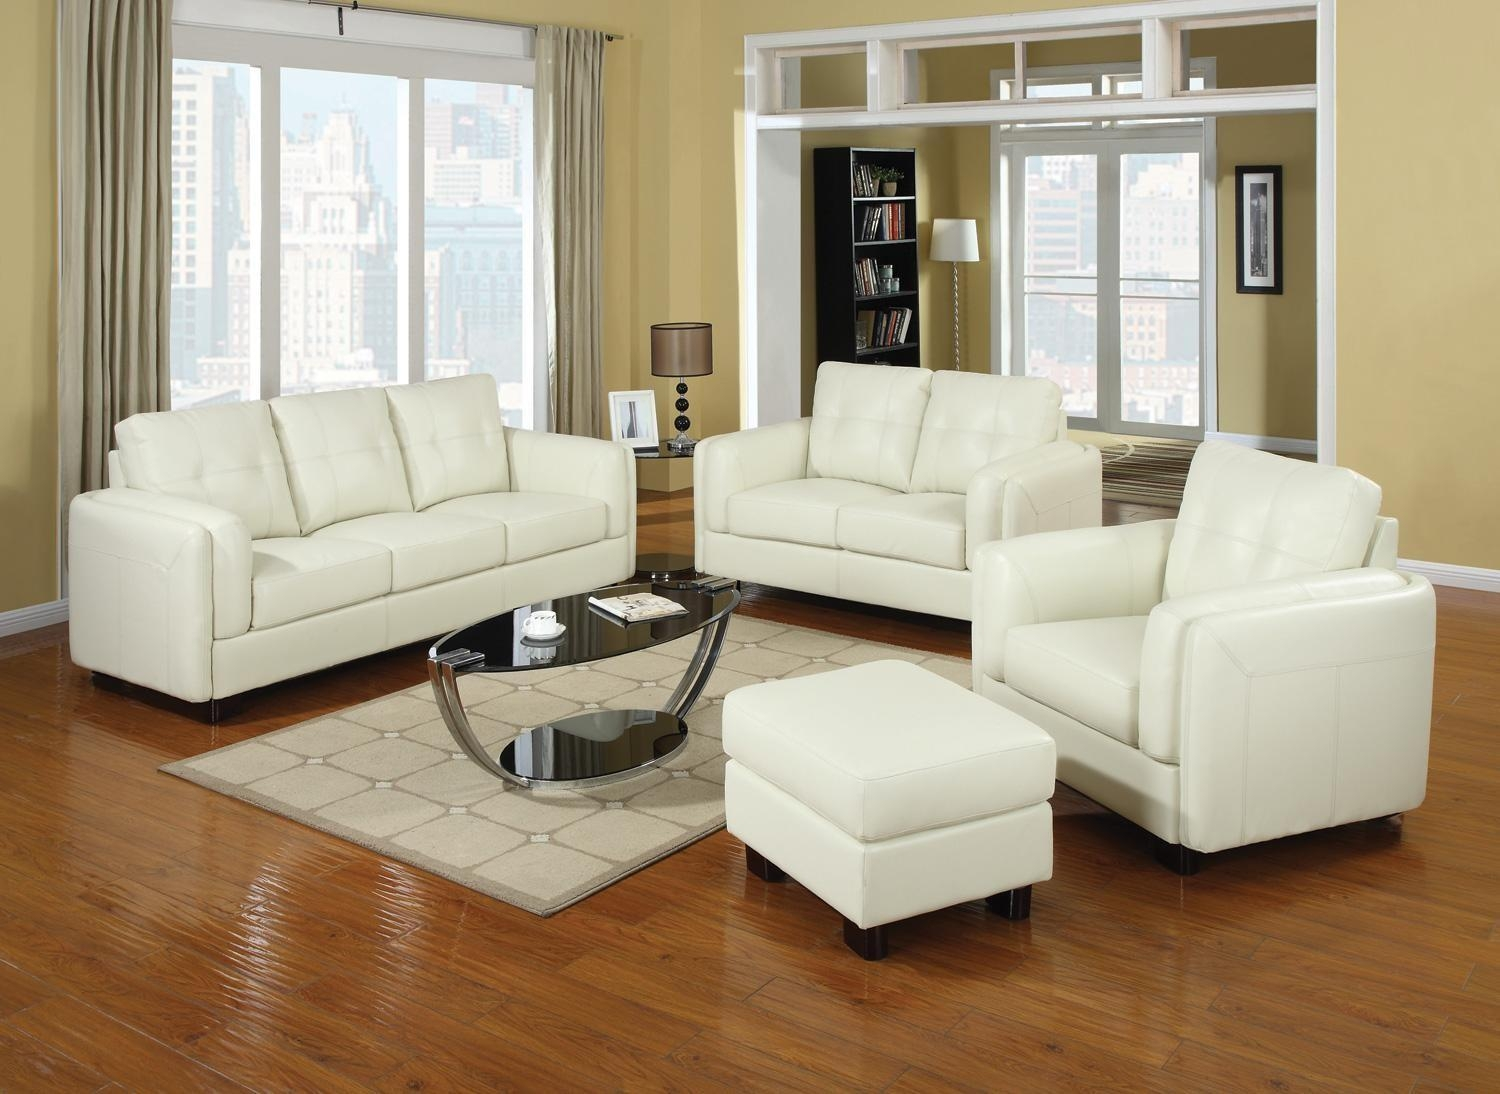 leather sofas for living room ivory colored sofas www energywarden net 19566